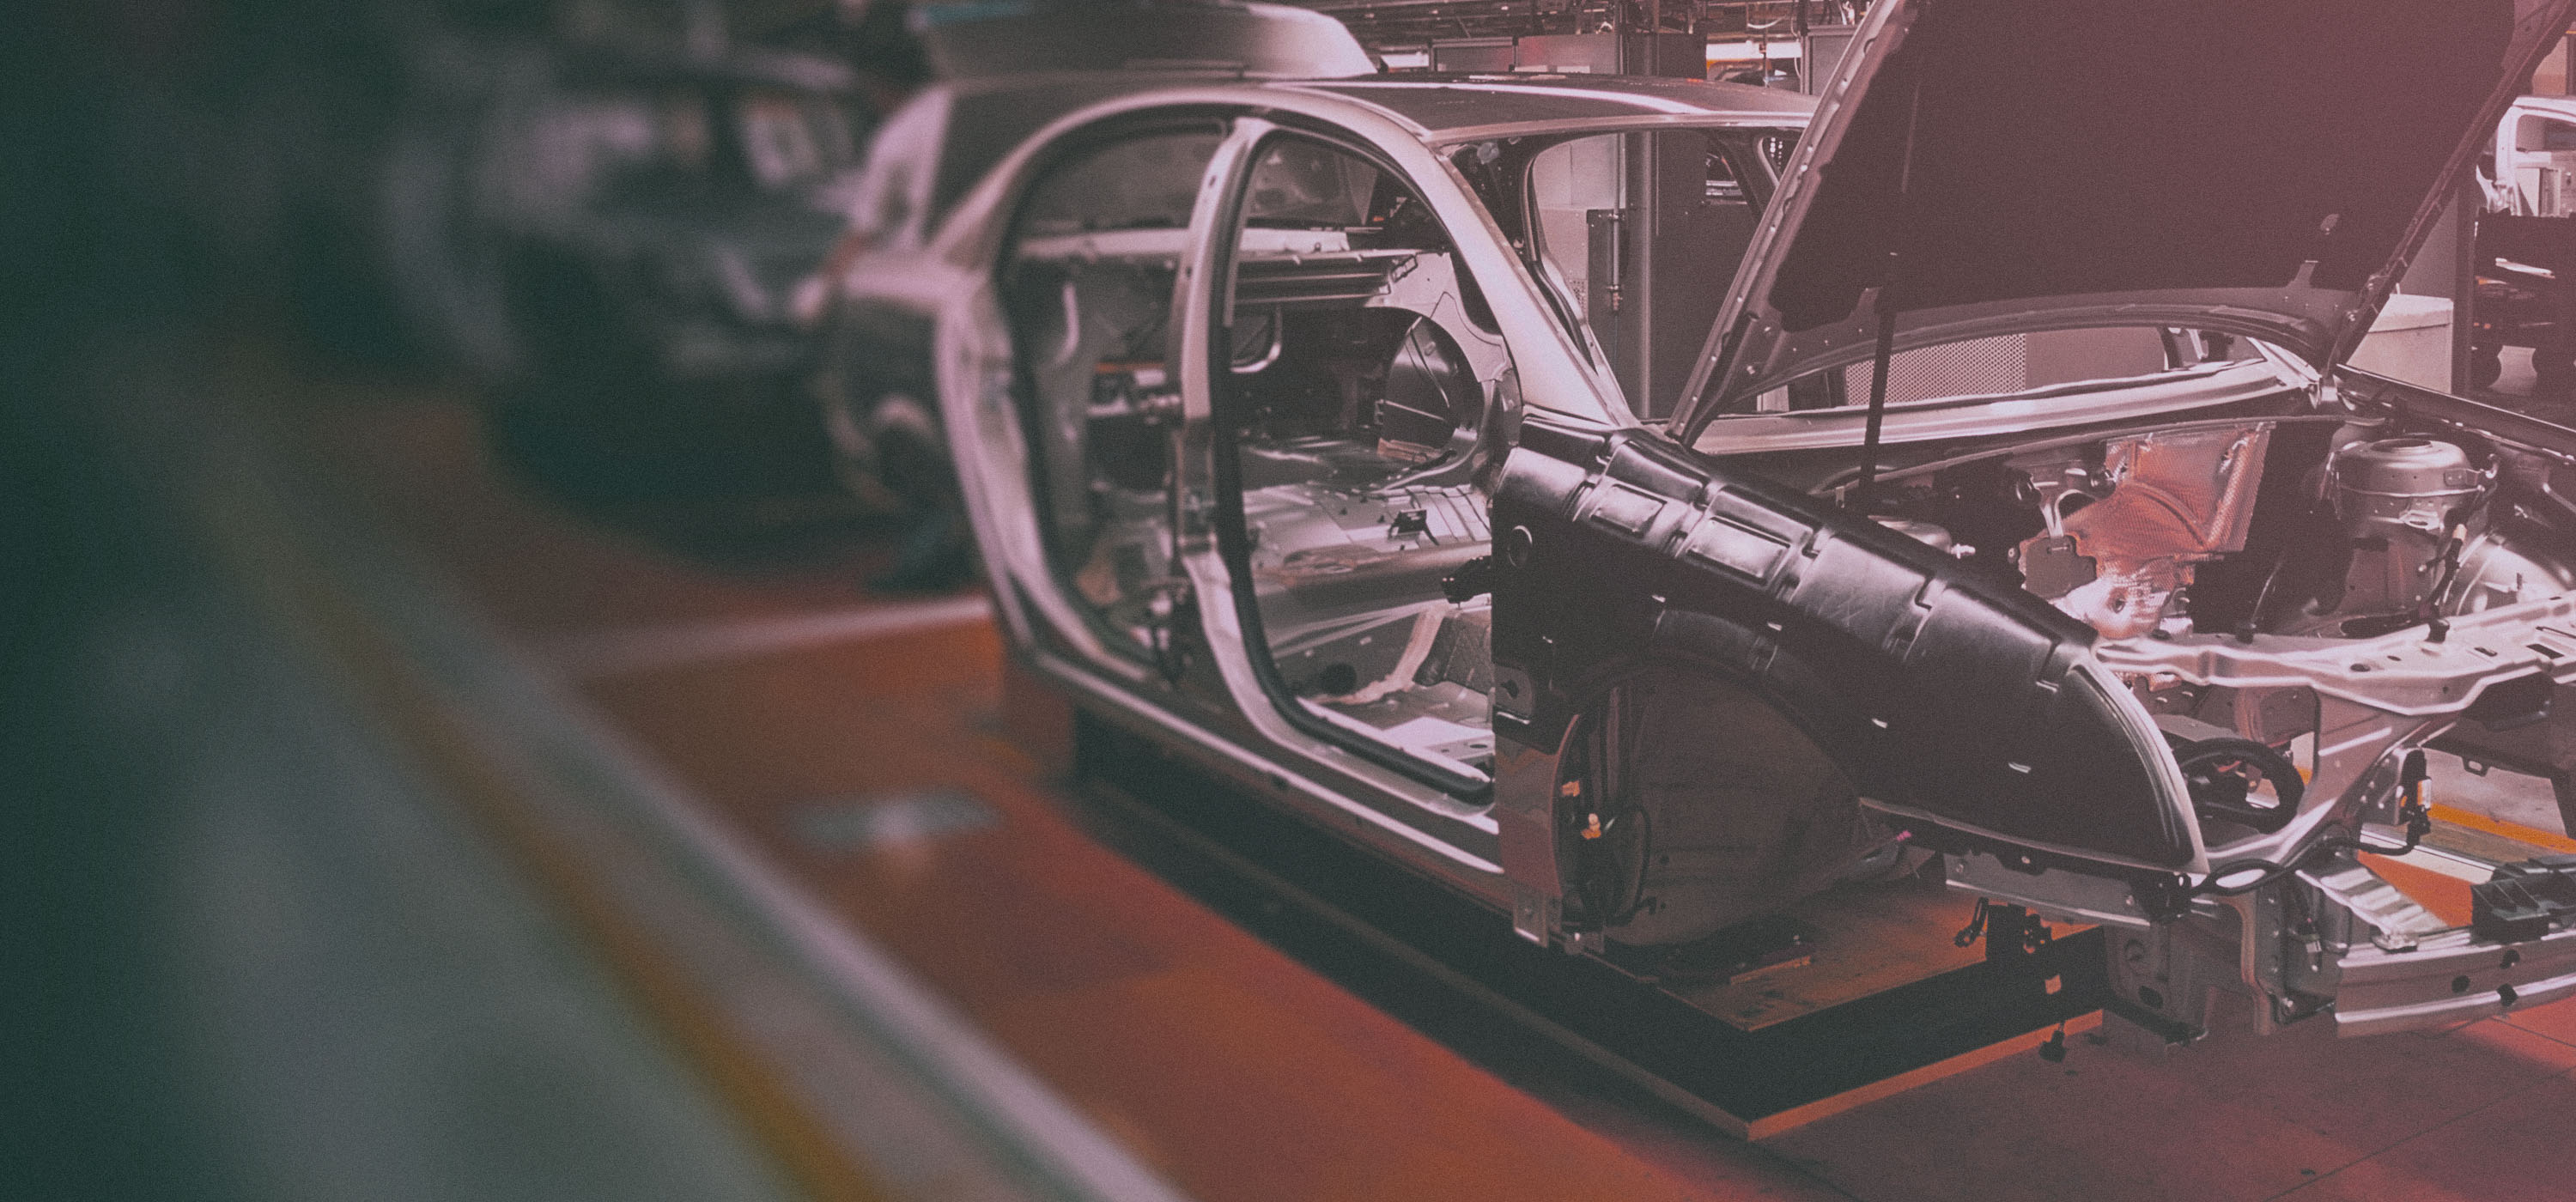 Automotive Manufacturing: Car body on a production line